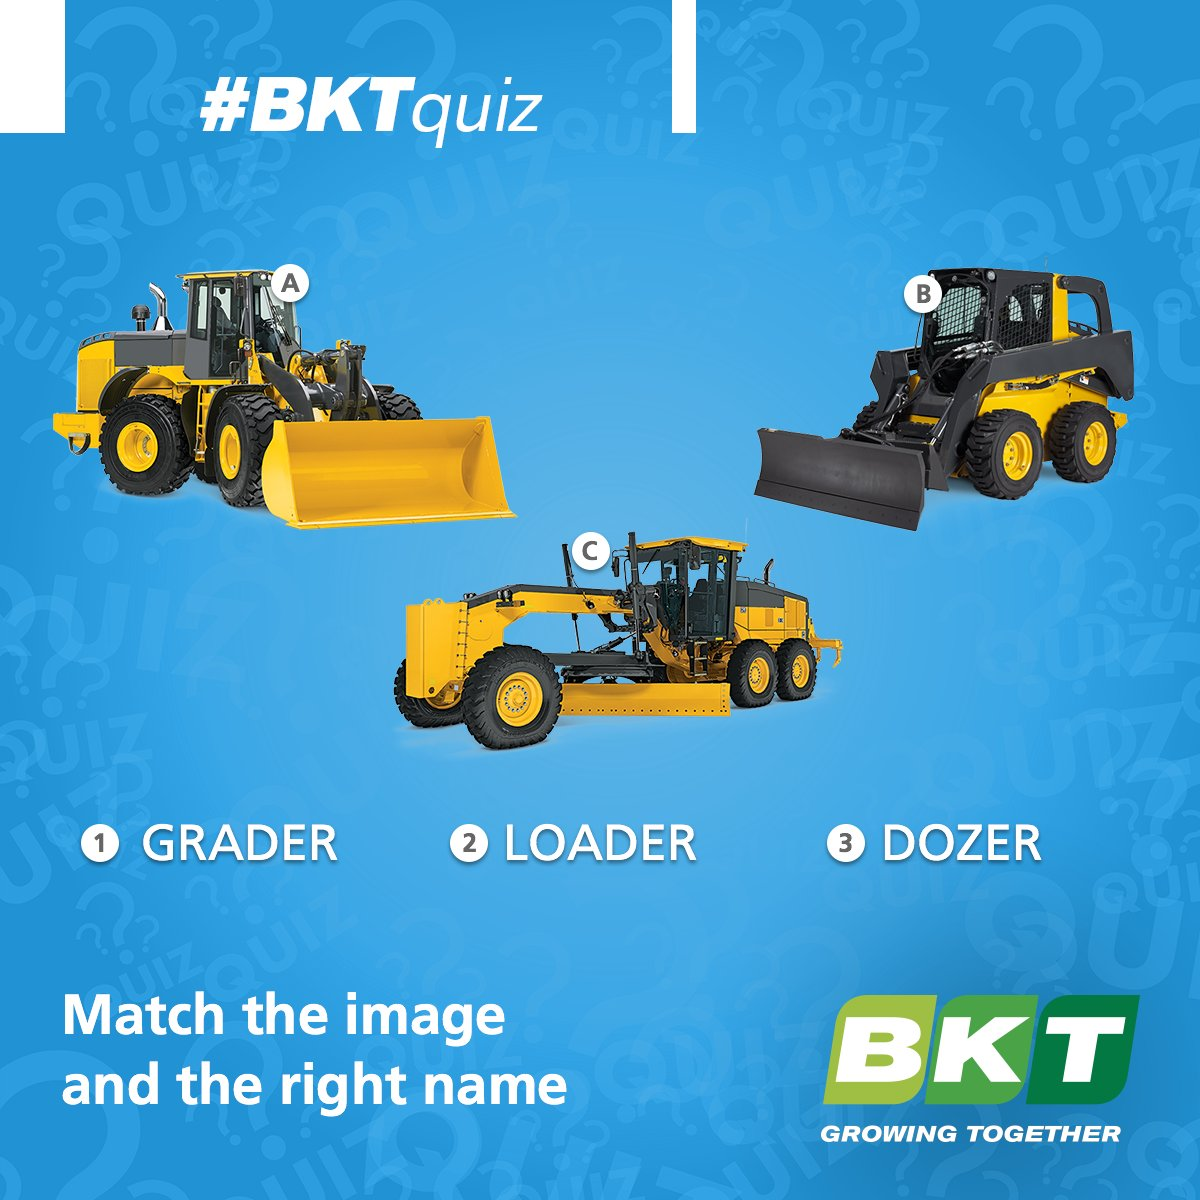 Guess the word! #BKTquiz #machinery #quiz #construction https://t.co/OfW8naalop